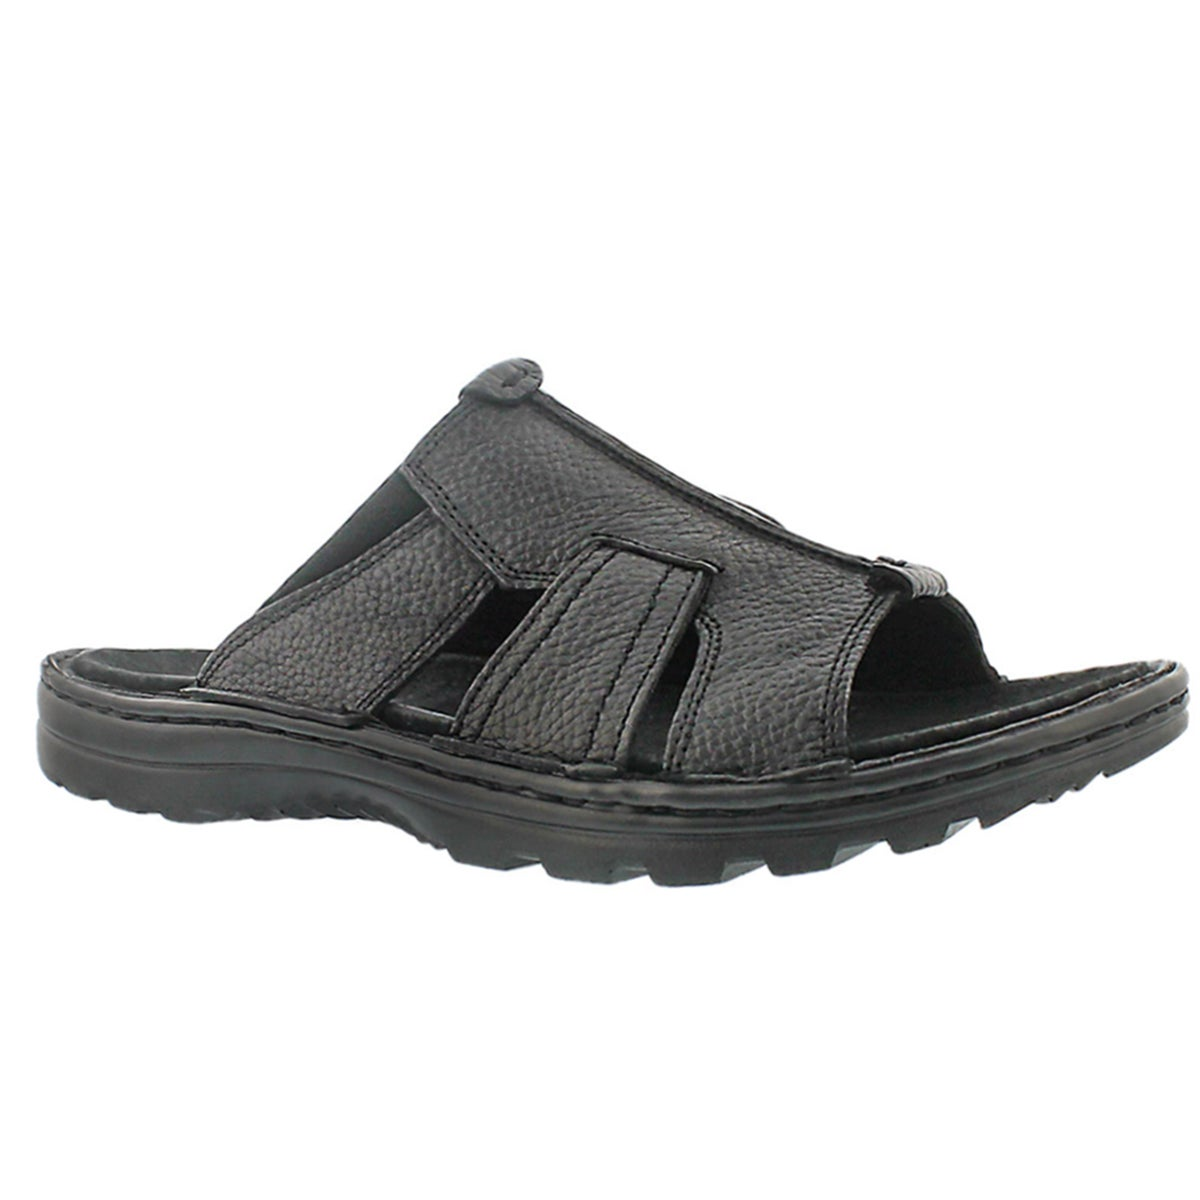 Mns Kiefer black slip on casual sandal